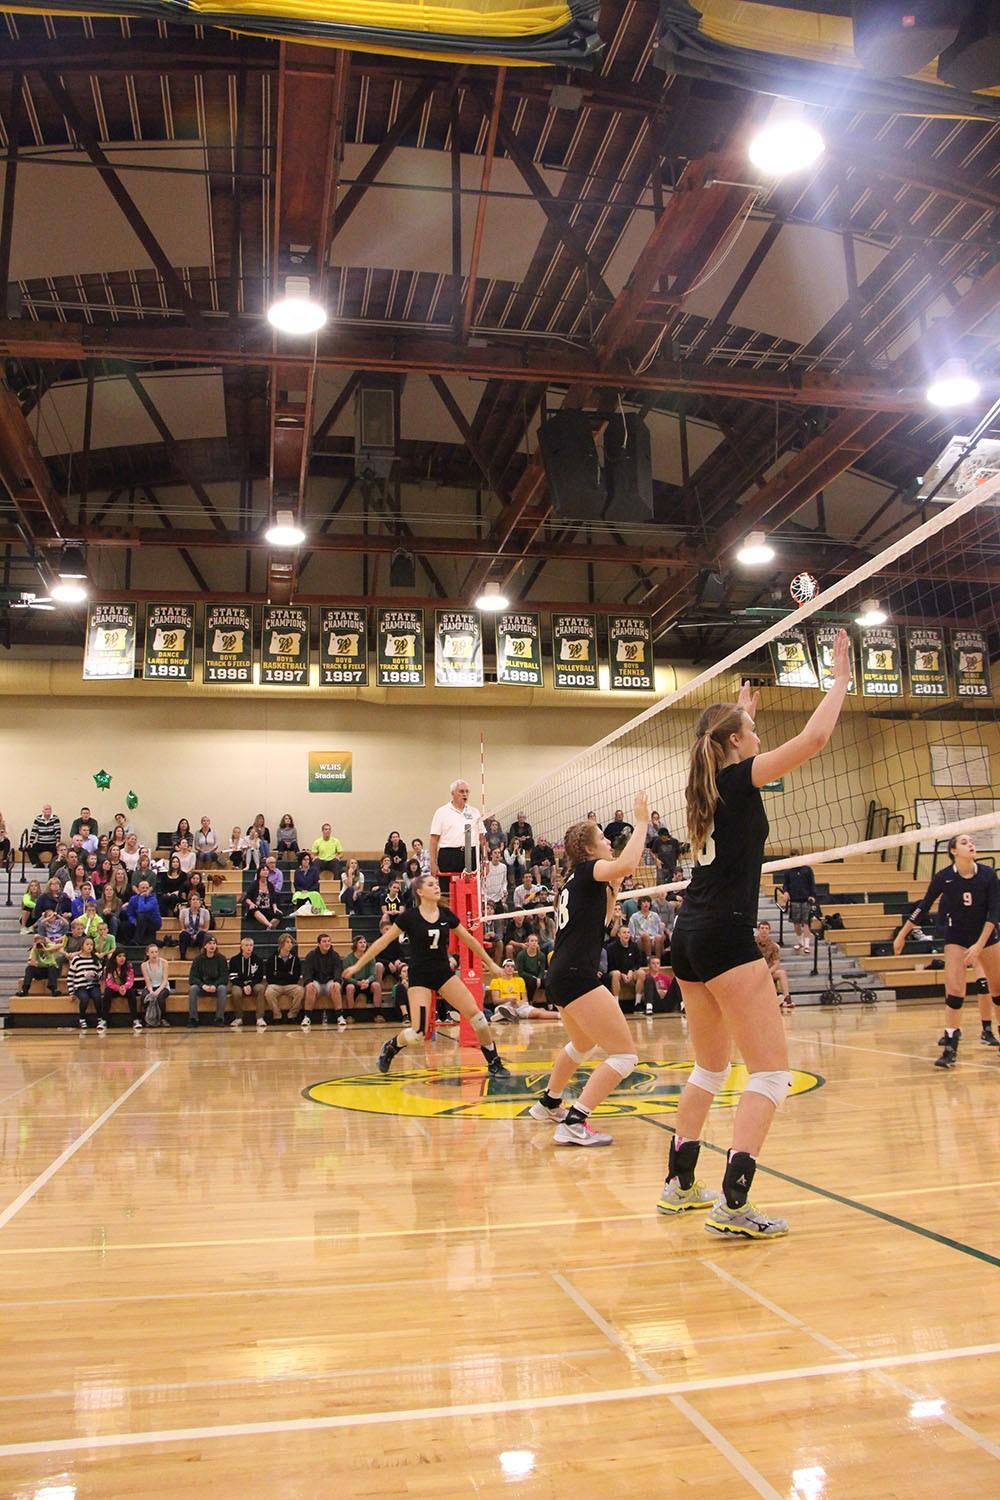 In a 3-2 set win over Lake Oswego, the Lions claimed the second overall spot in the Three Rivers League. They will face North Medford in the first round, Wednesday at 6:00 p.m.